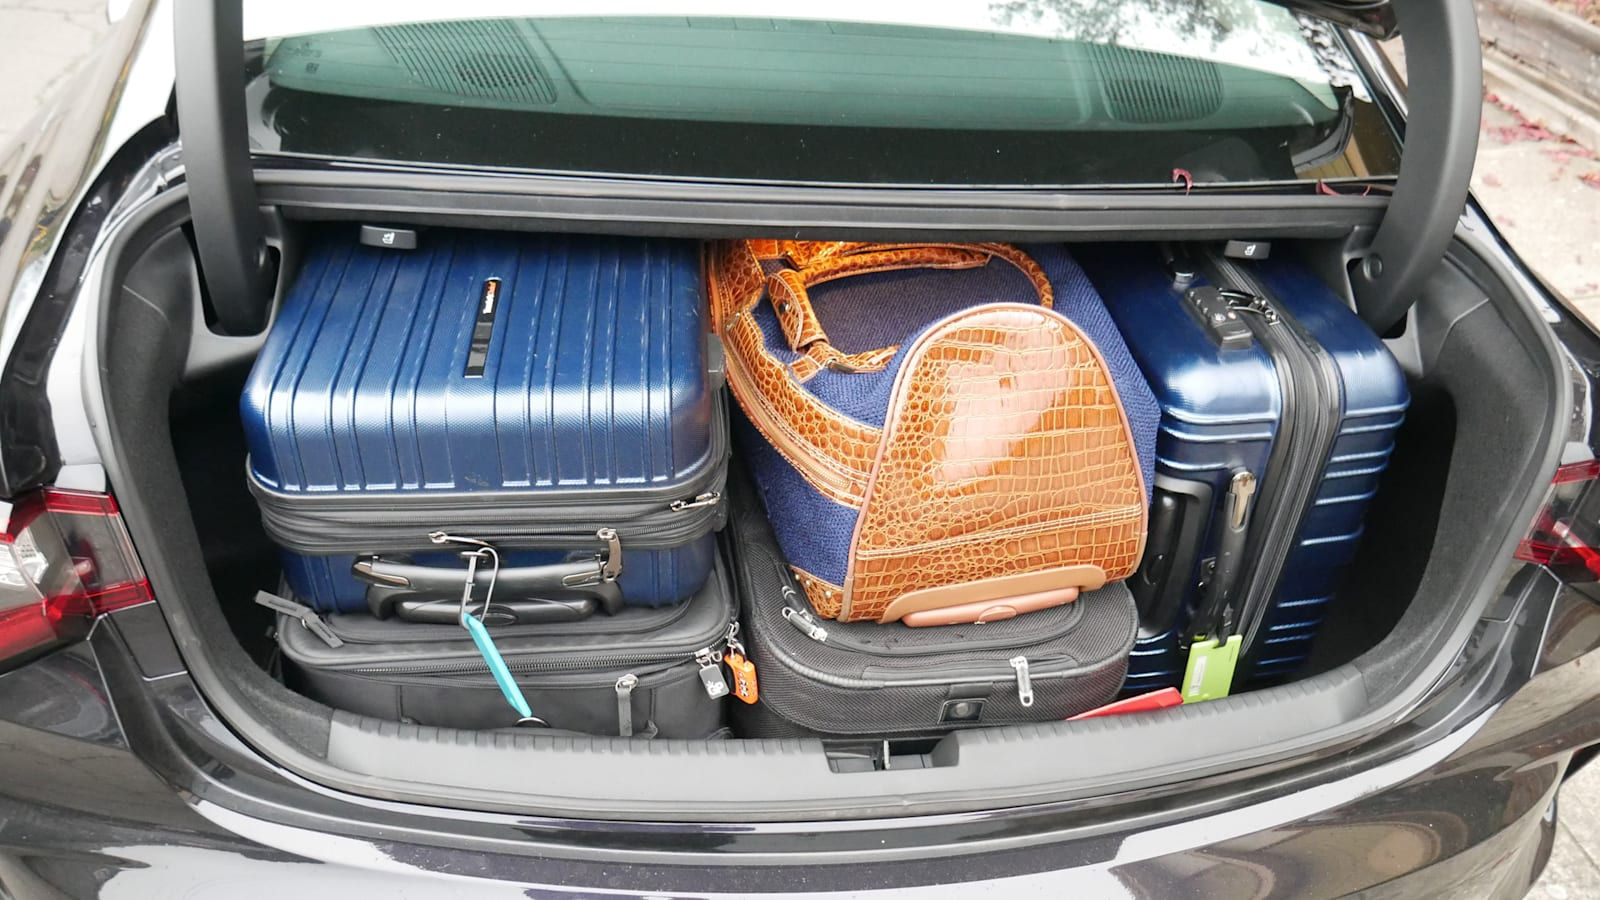 2021 Acura TLX luggage test all bags